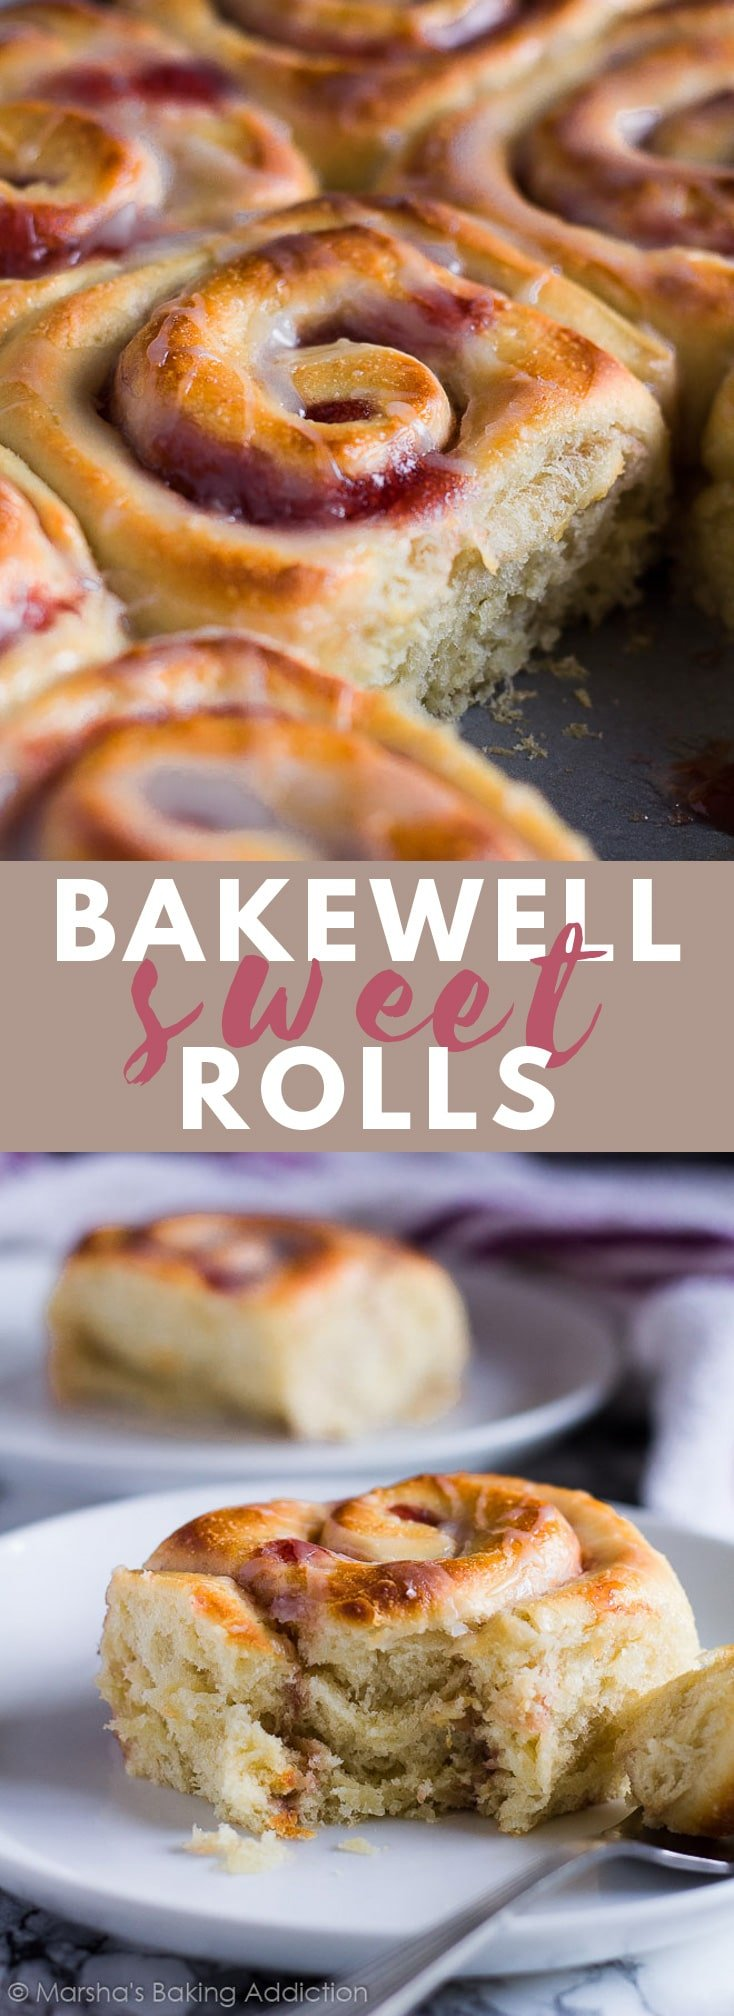 Bakewell Sweet Rolls –  Deliciously soft and fluffy almond flavoured sweet rolls filled with raspberry jam, and drizzled with a sweet almond glaze!